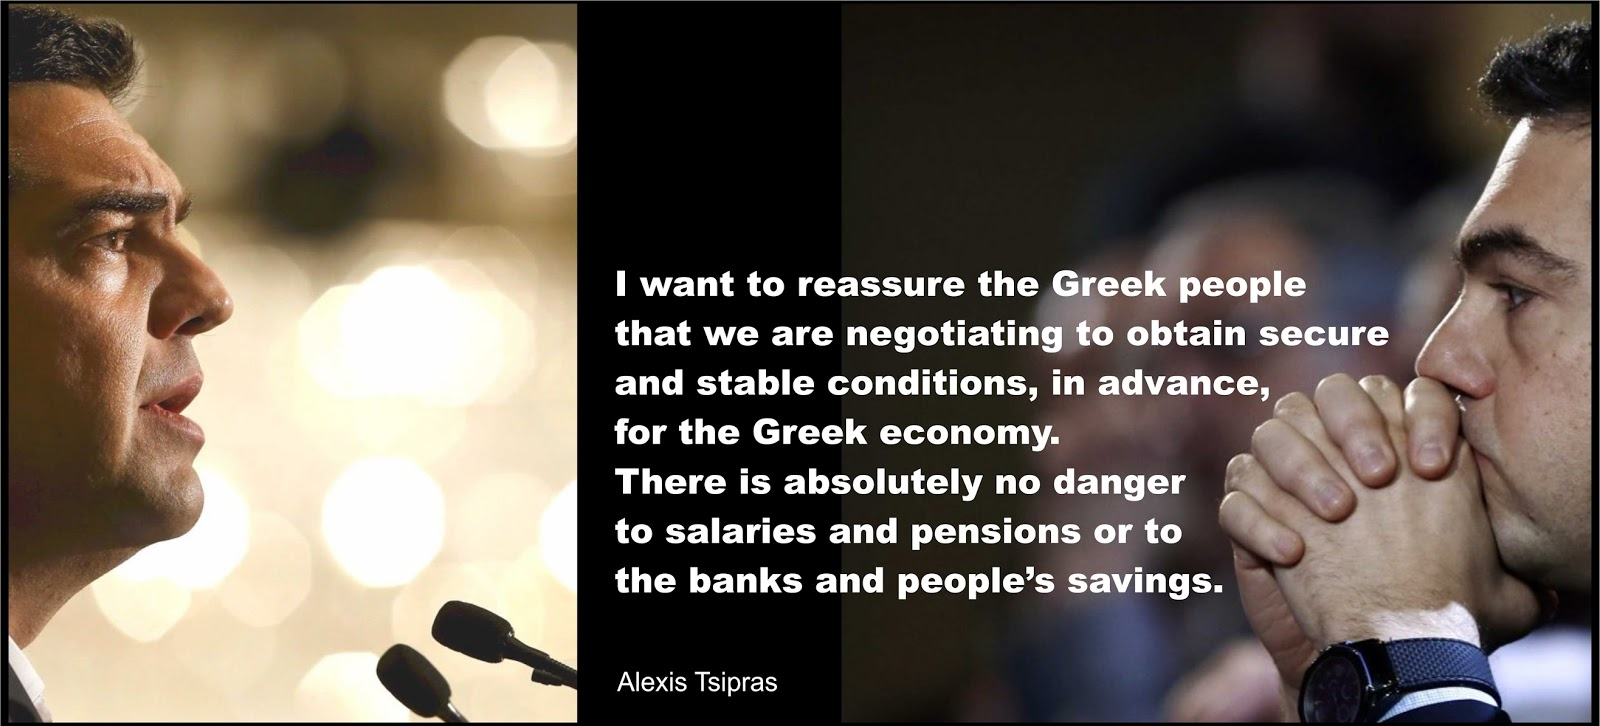 http://www.primeminister.gov.gr/english/2015/05/27/prime-minister-alexis-tsipras-statement-following-the-meeting-with-the-political-negotiation-team/